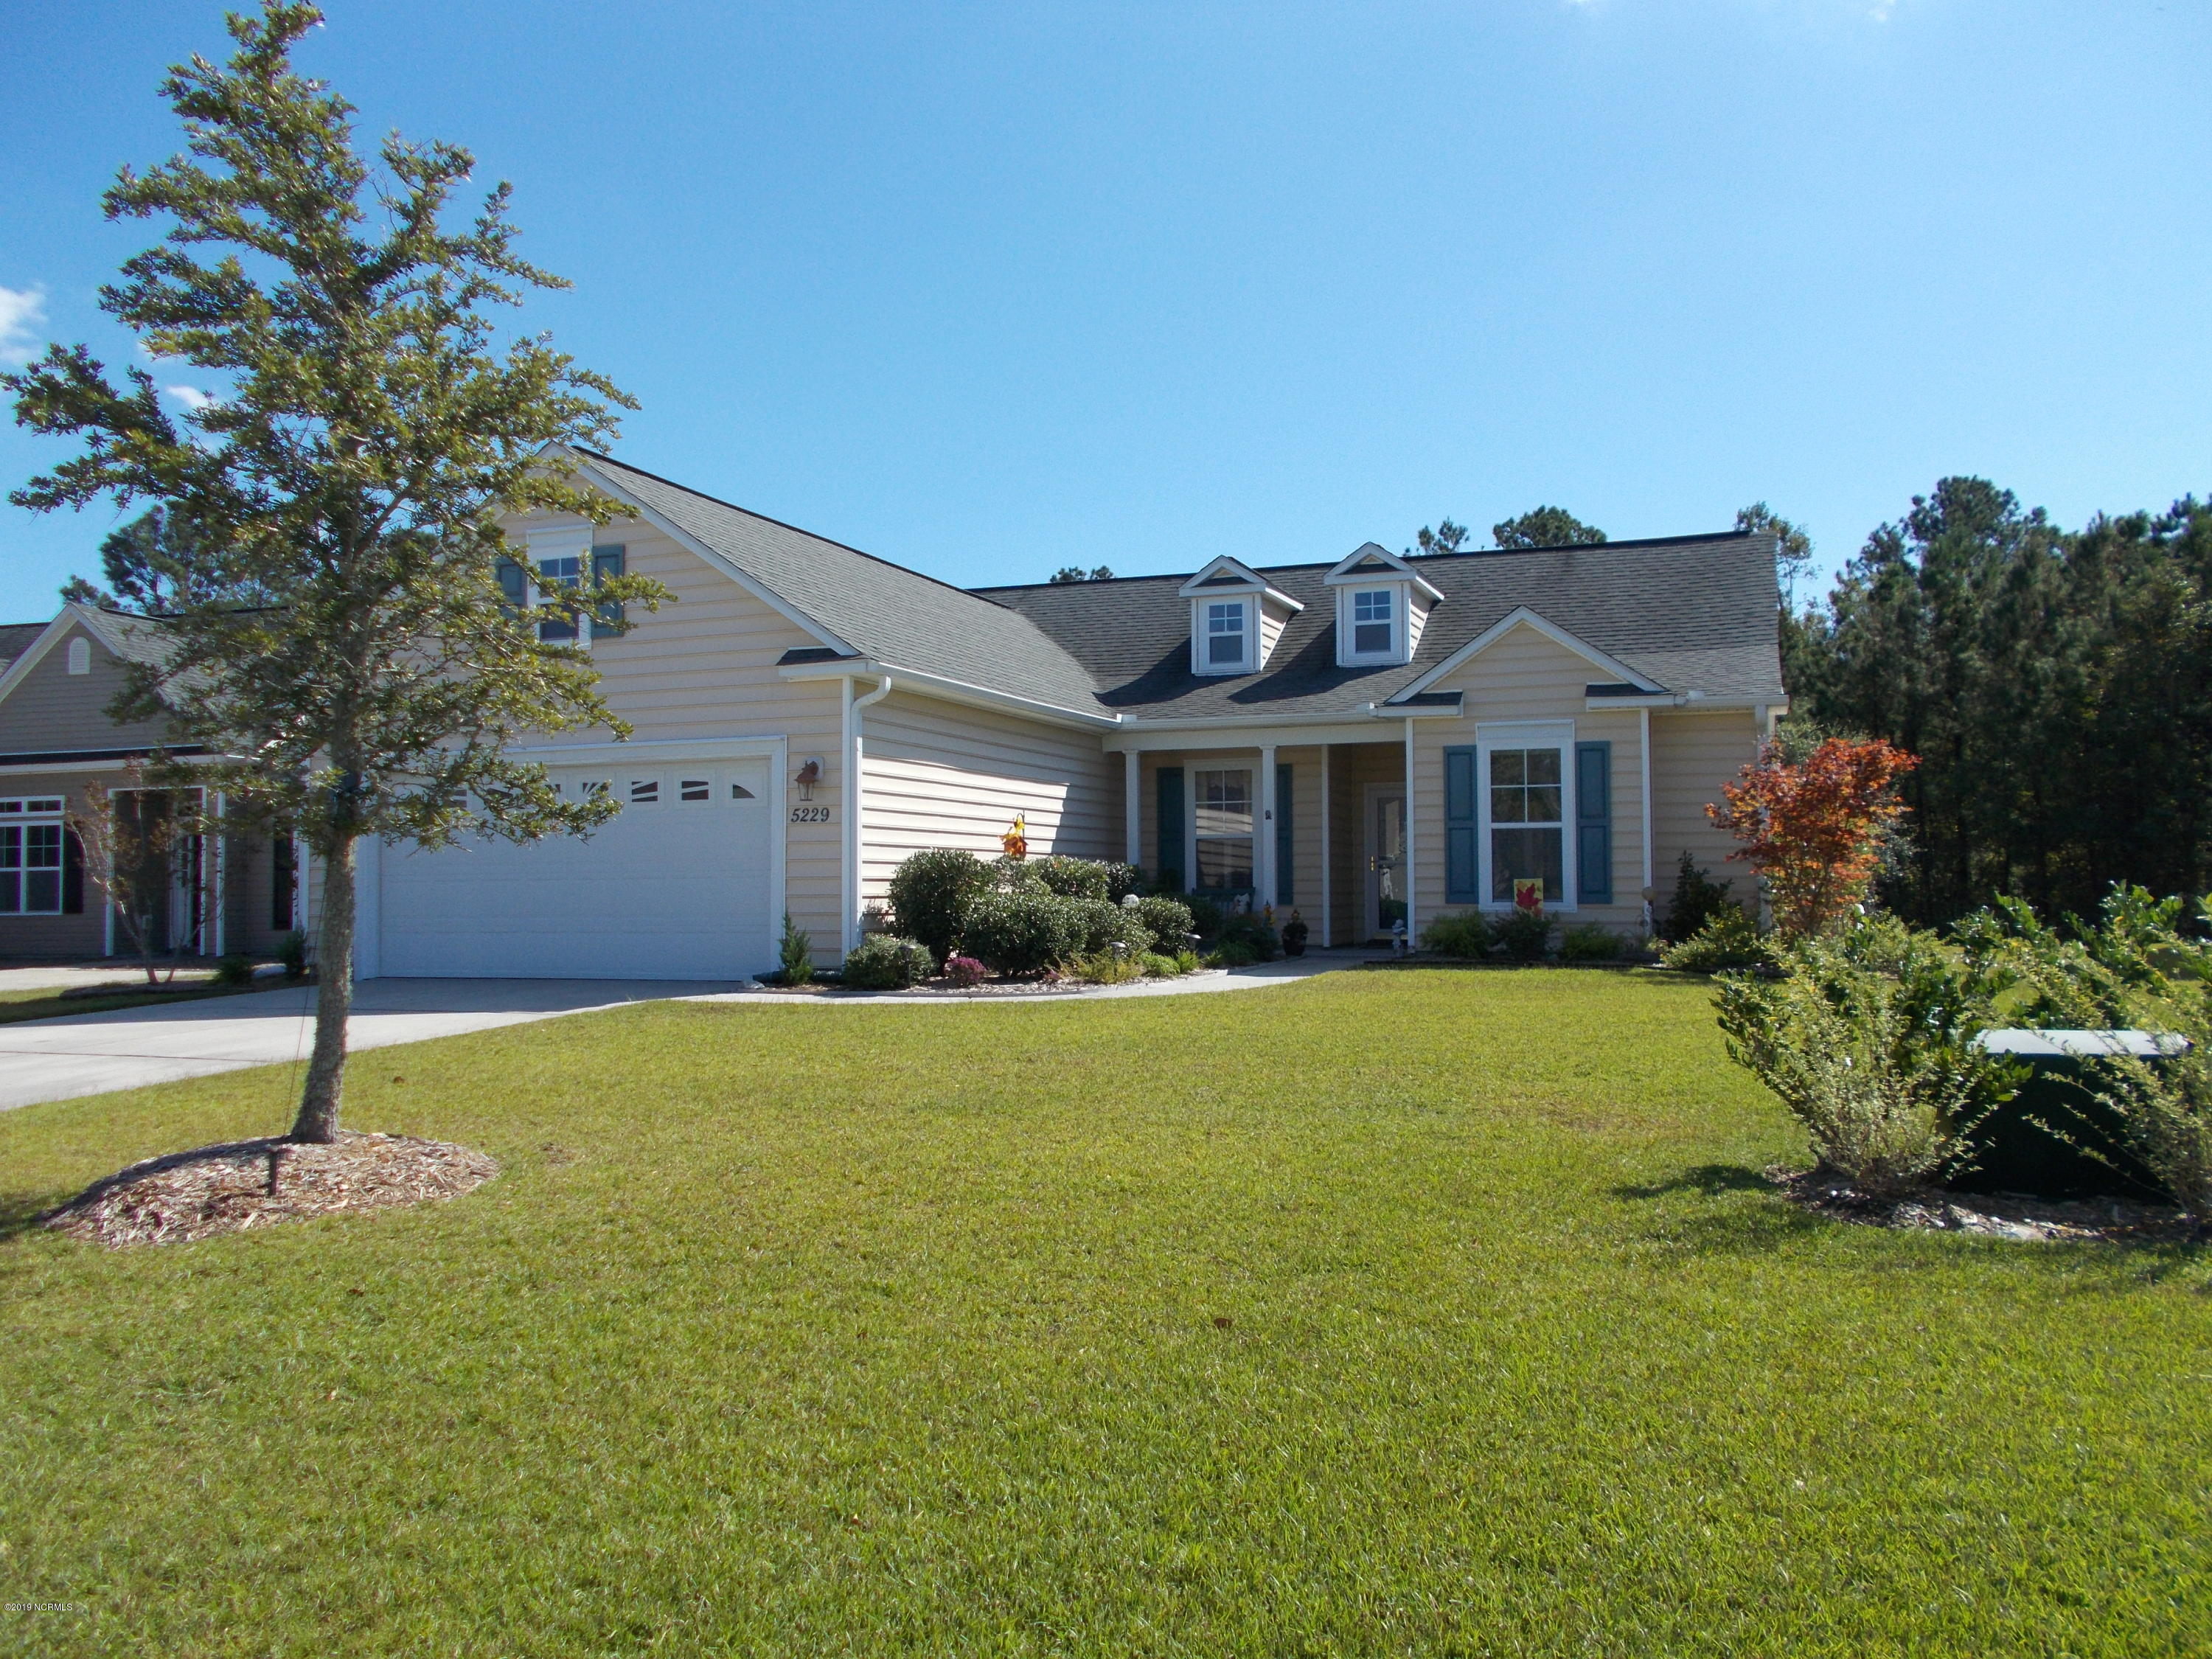 5229 Shipmast Way Southport, NC 28461